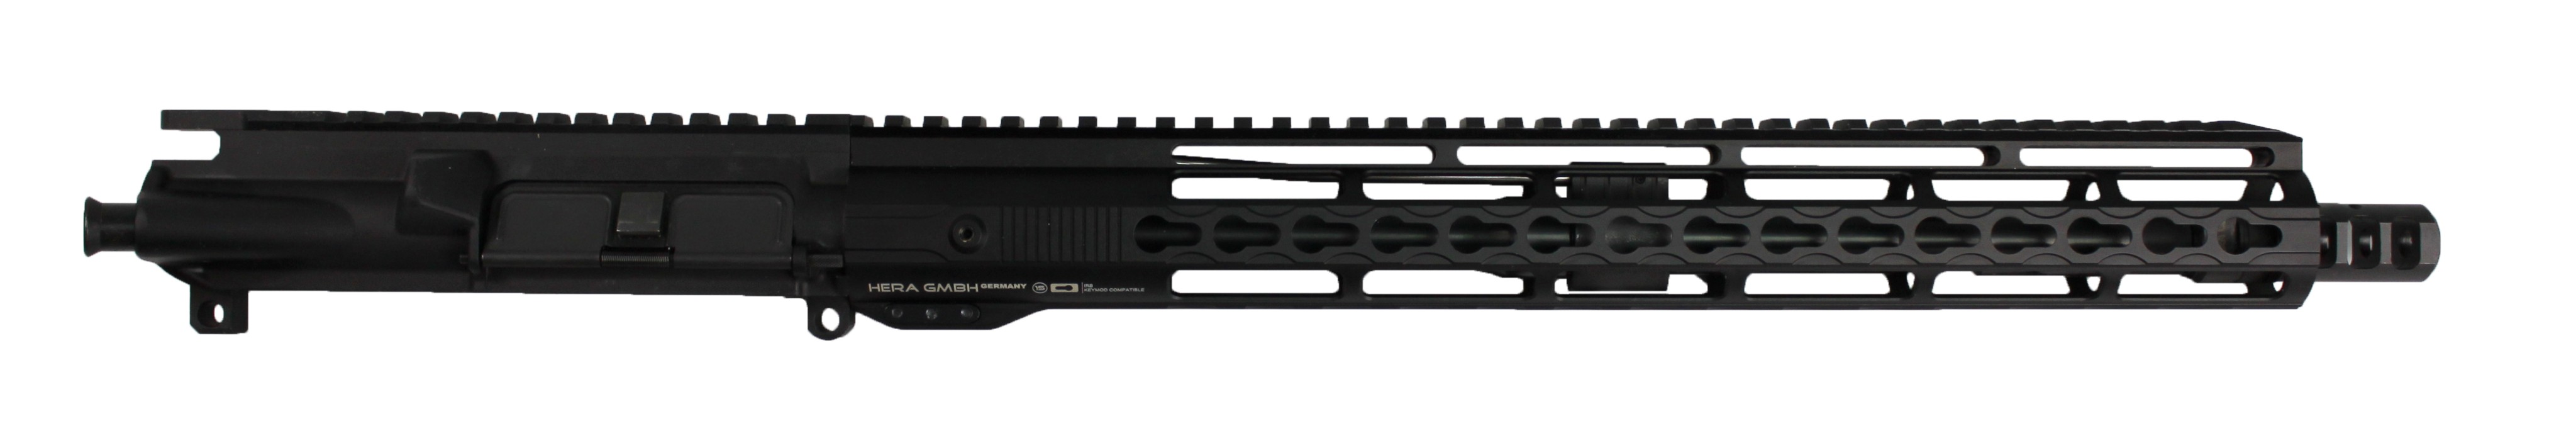 ar 15 upper assembly 16 m4 5 56 x 45 1 7 15 hera arms keymod ar 15 handguard rail